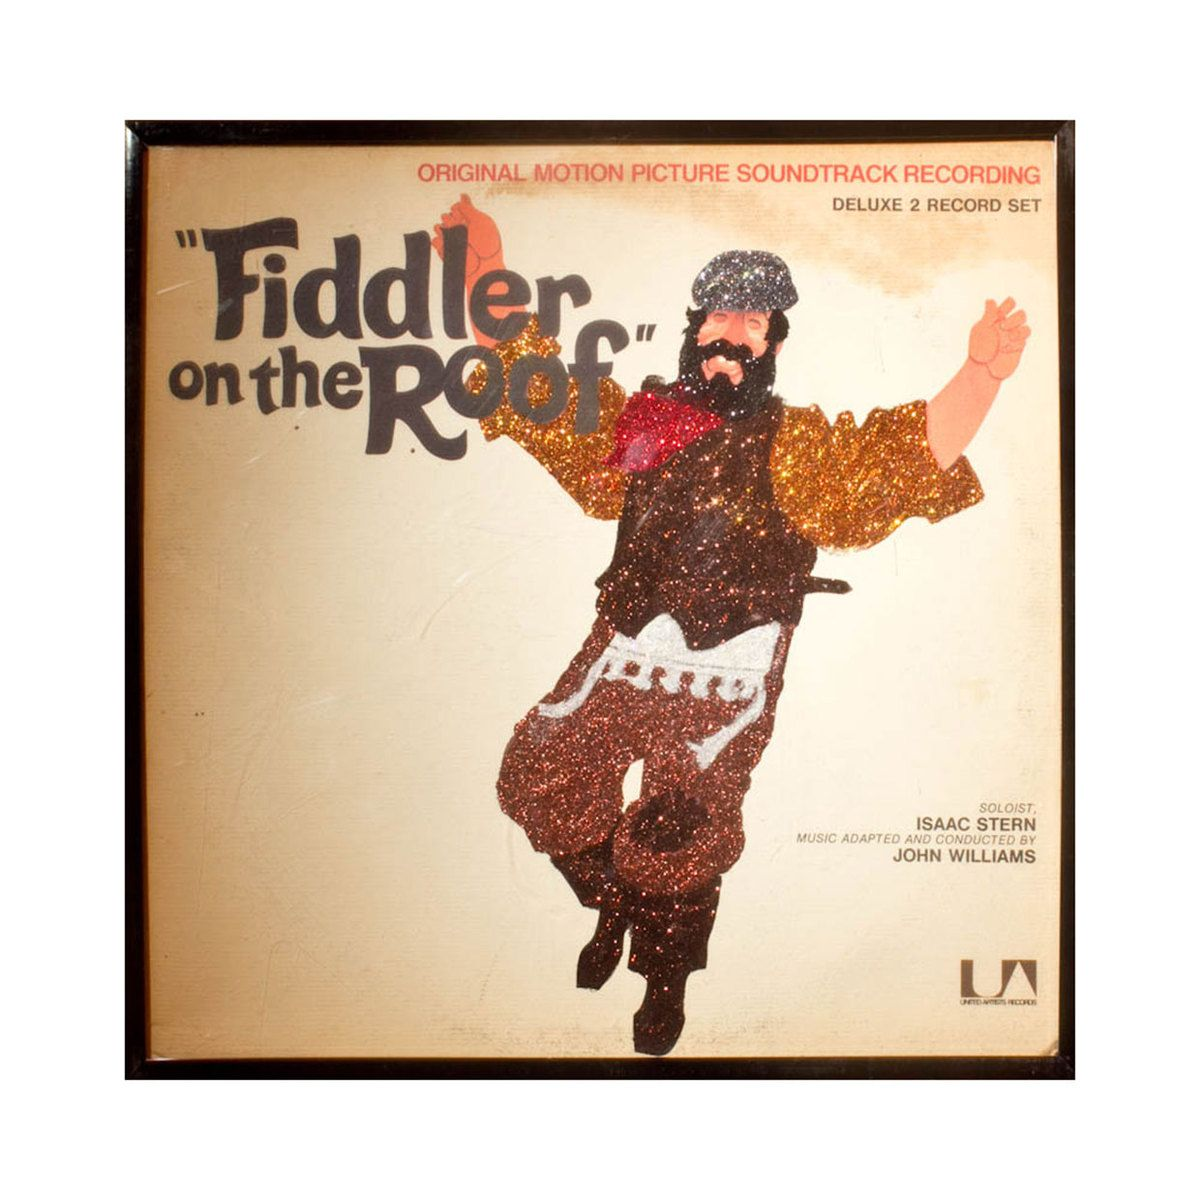 fiddler on the roof muthafucka! Fiddler on the roof